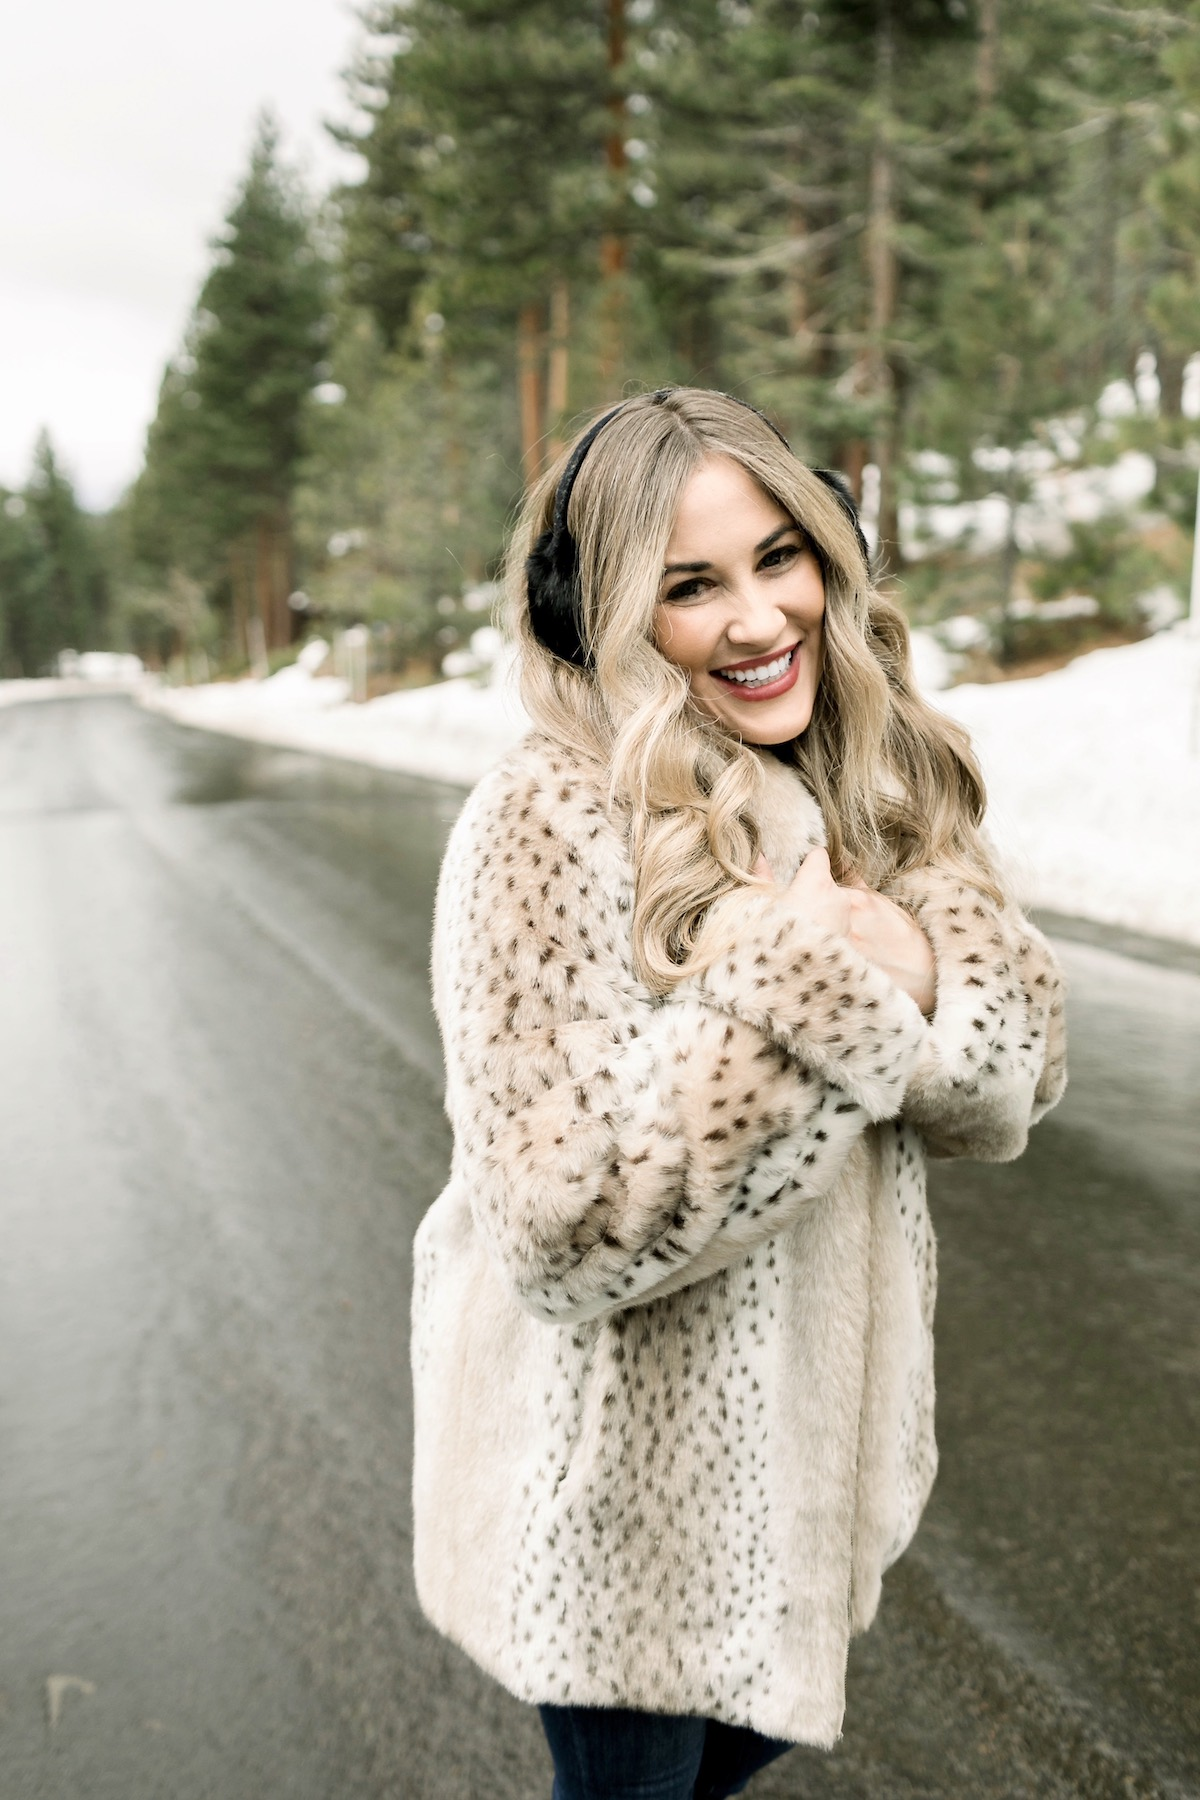 Winter Essentials featured by top Memphis fashion blog, Walking in Memphis in High Heels: image of a woman wearing an ARIAT top, Dennis Basso leopard faux fur coat, Good American high rise skinny jeans, Enzo Angiolini booties, and Surell earmuffs.